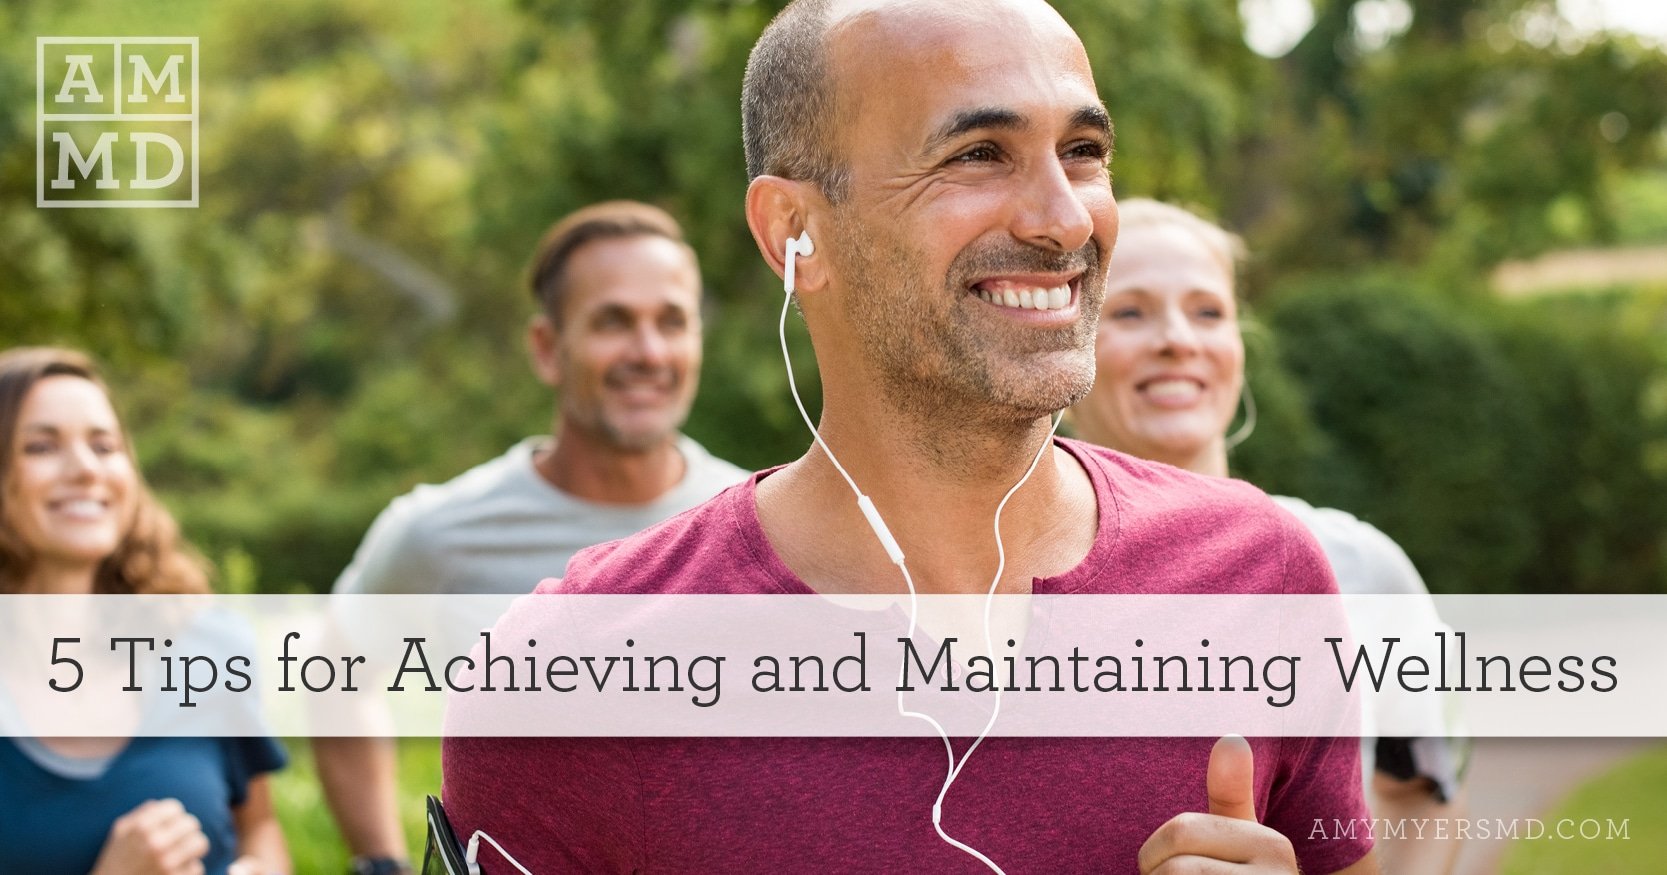 5 Tips for Achieving and Maintaining Wellness - A Man Jogging with Friends - Featured Image - AmyMyers MD